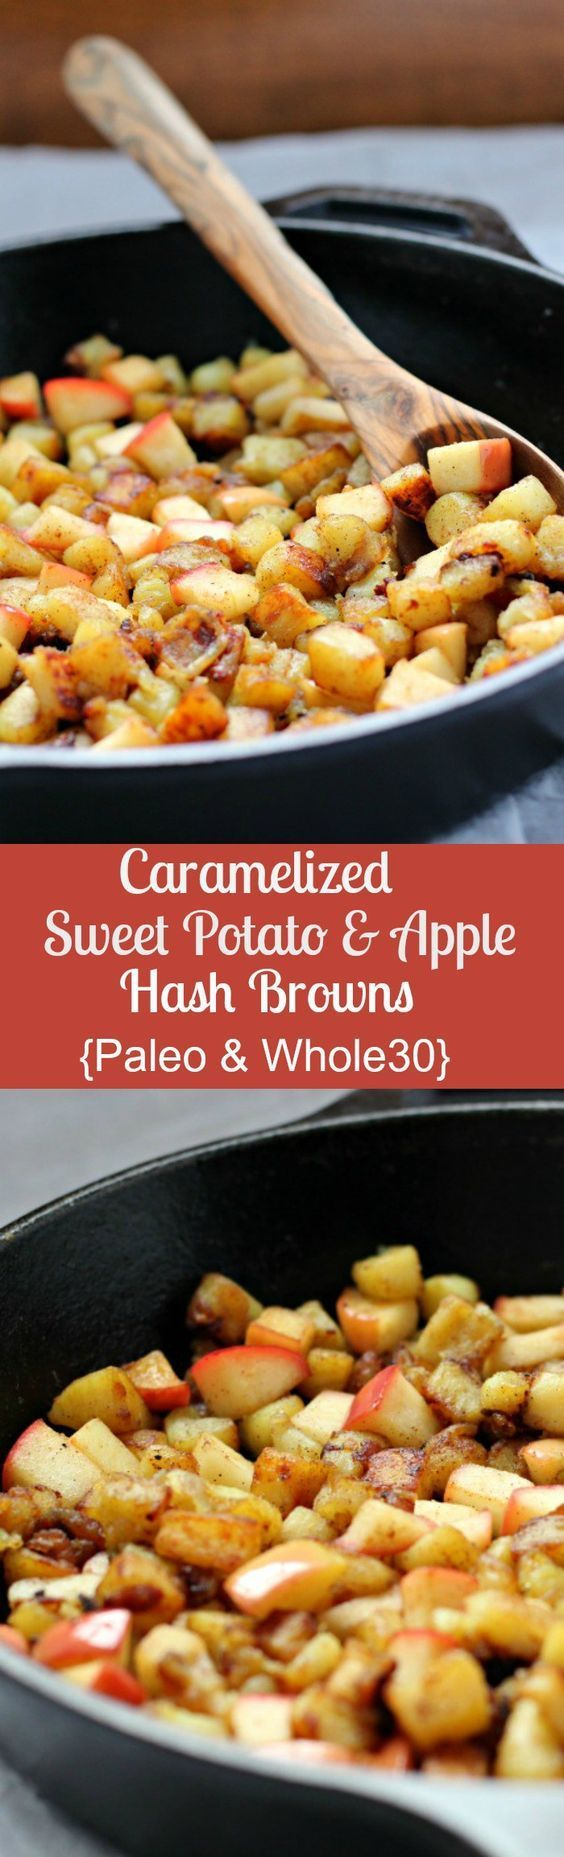 Caramelized sweet potato hash with apples - #paleo, #vegan and #whole30 friendly - that you can make with a white, Japanese, or classic sweet potato - so simple and incredibly delicious!